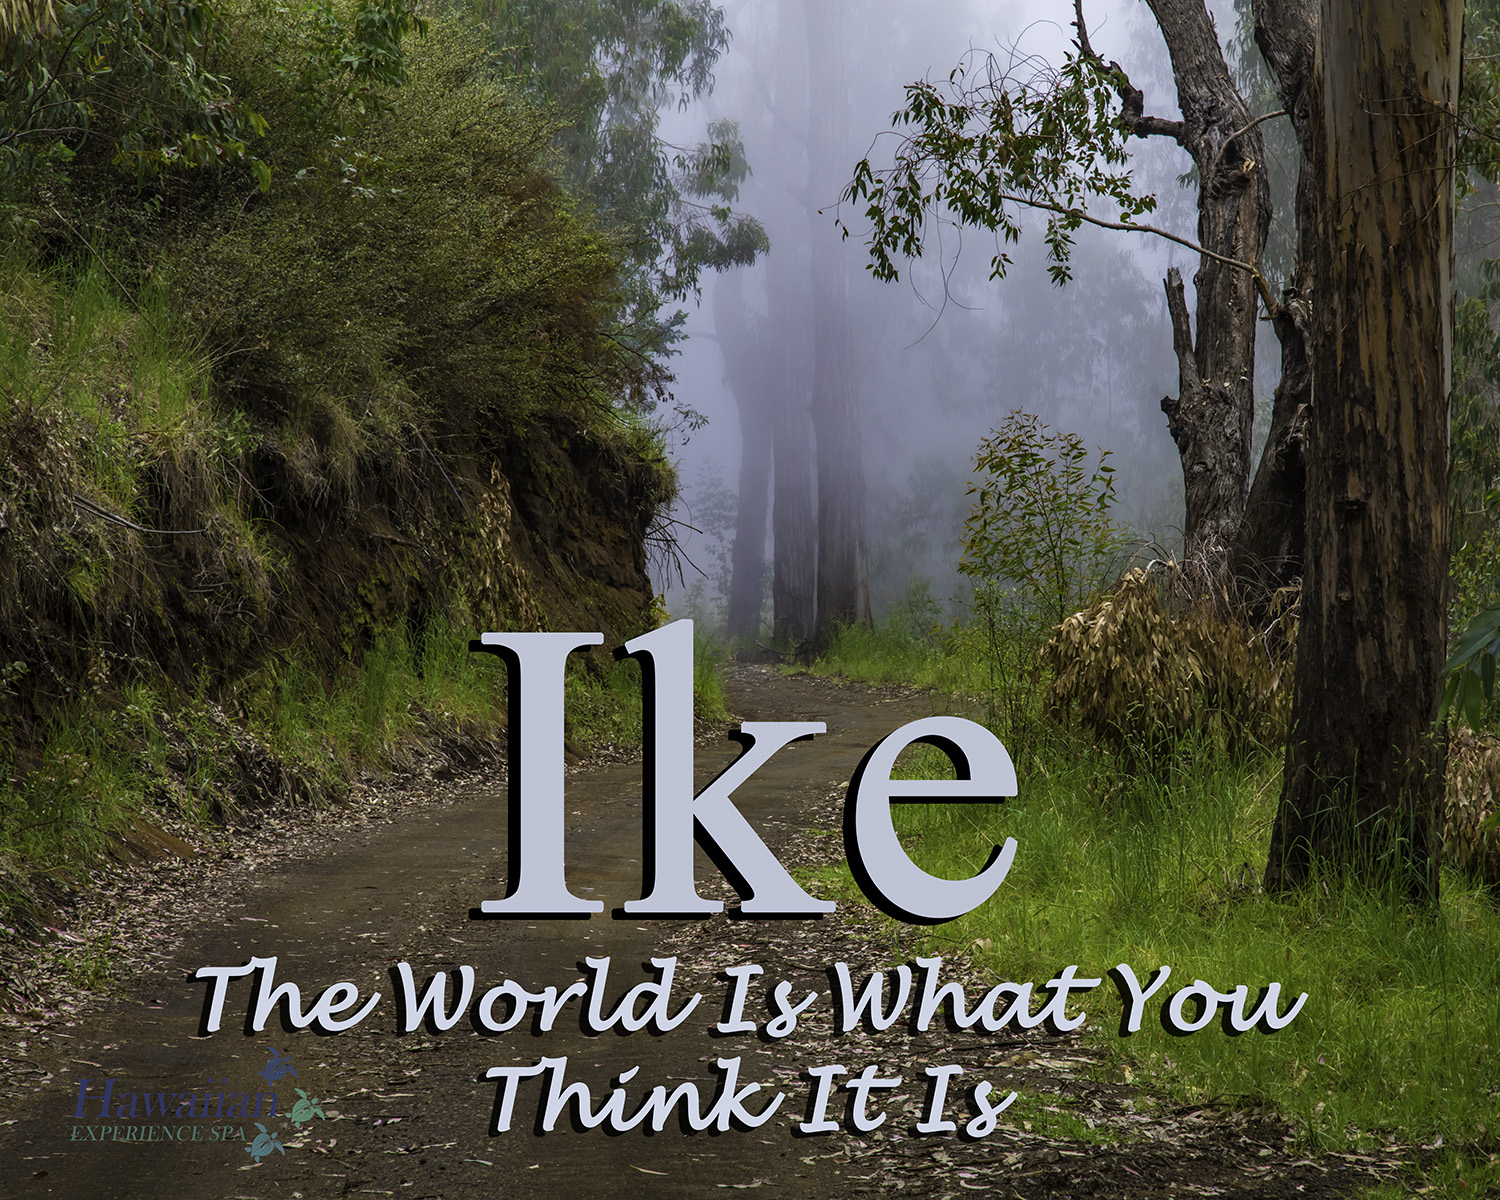 Ike - The World Is What You Think It Is